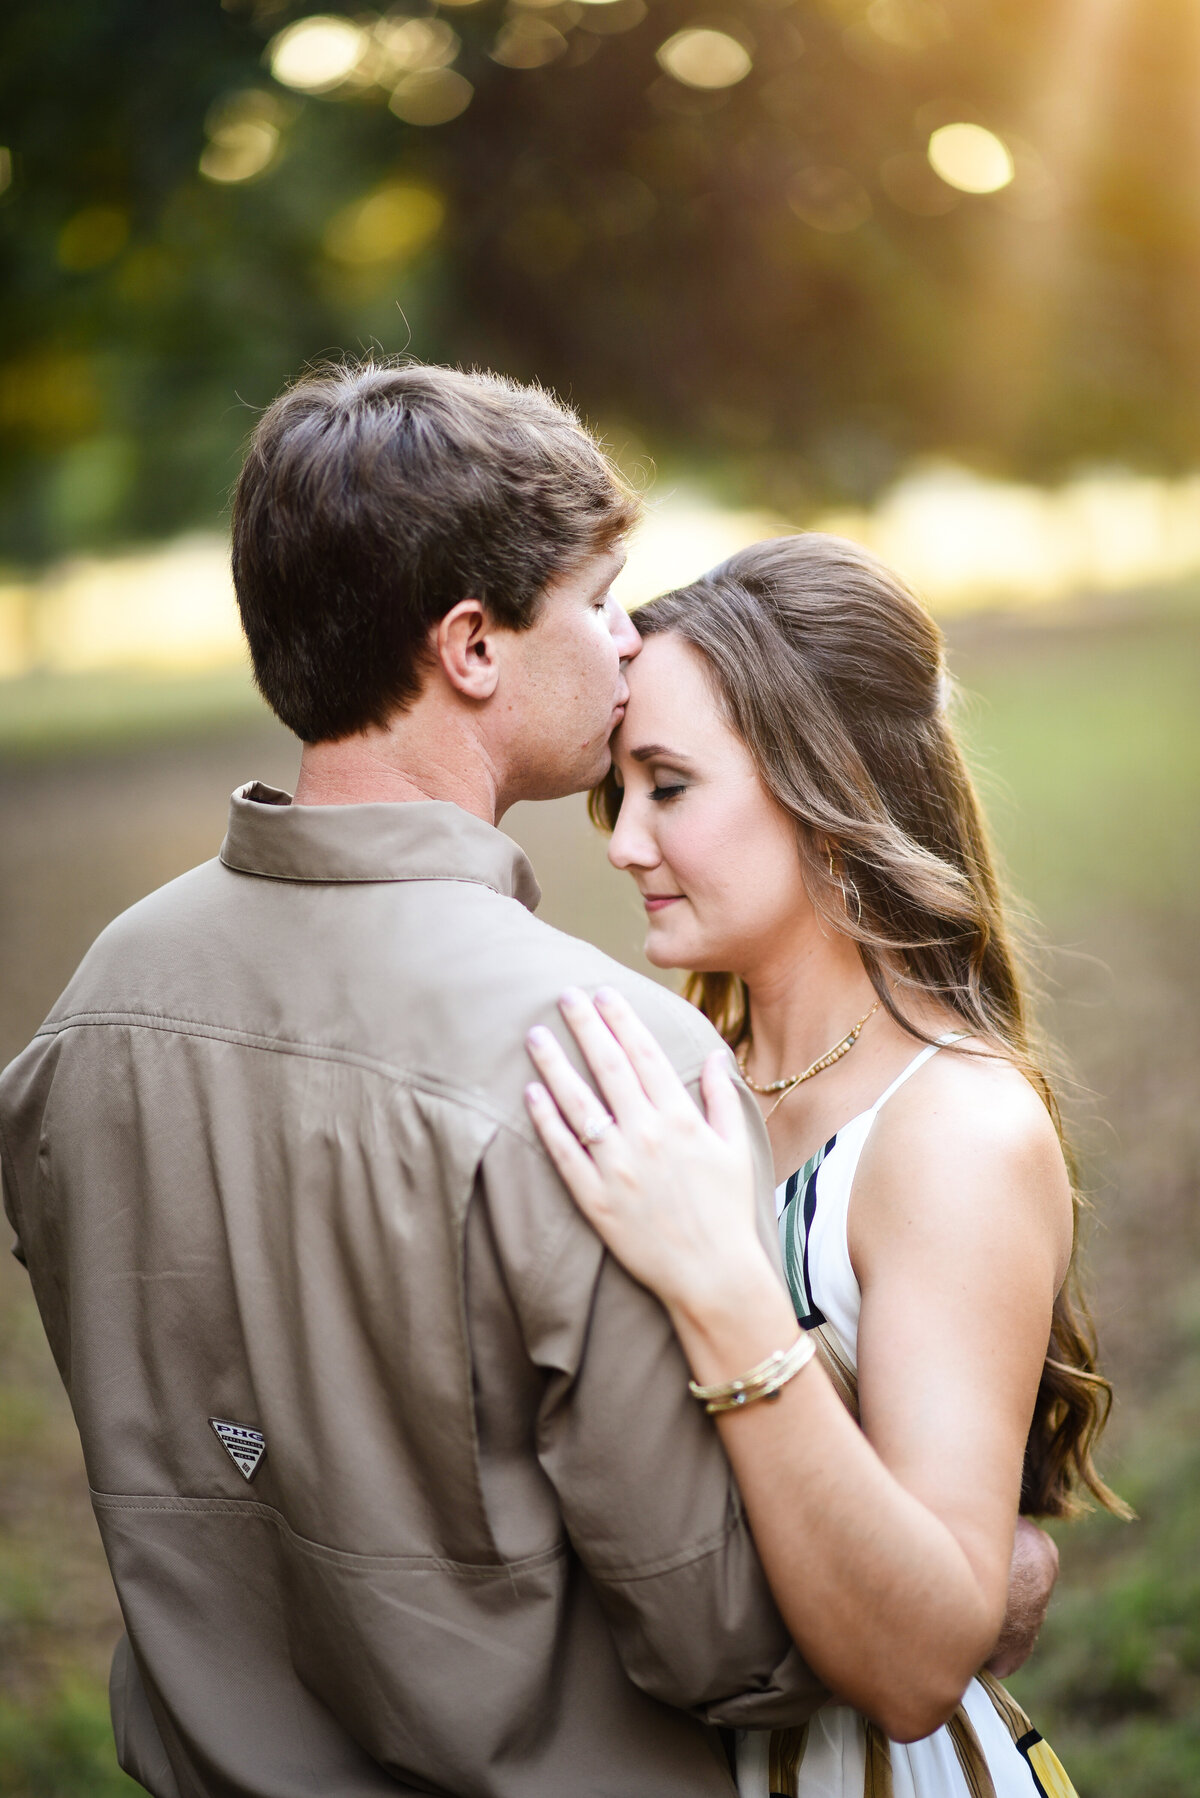 Beautiful Mississippi Engagement Photography: man kisses woman during golden hour sunset in Mississippi Delta Pecan Orchard